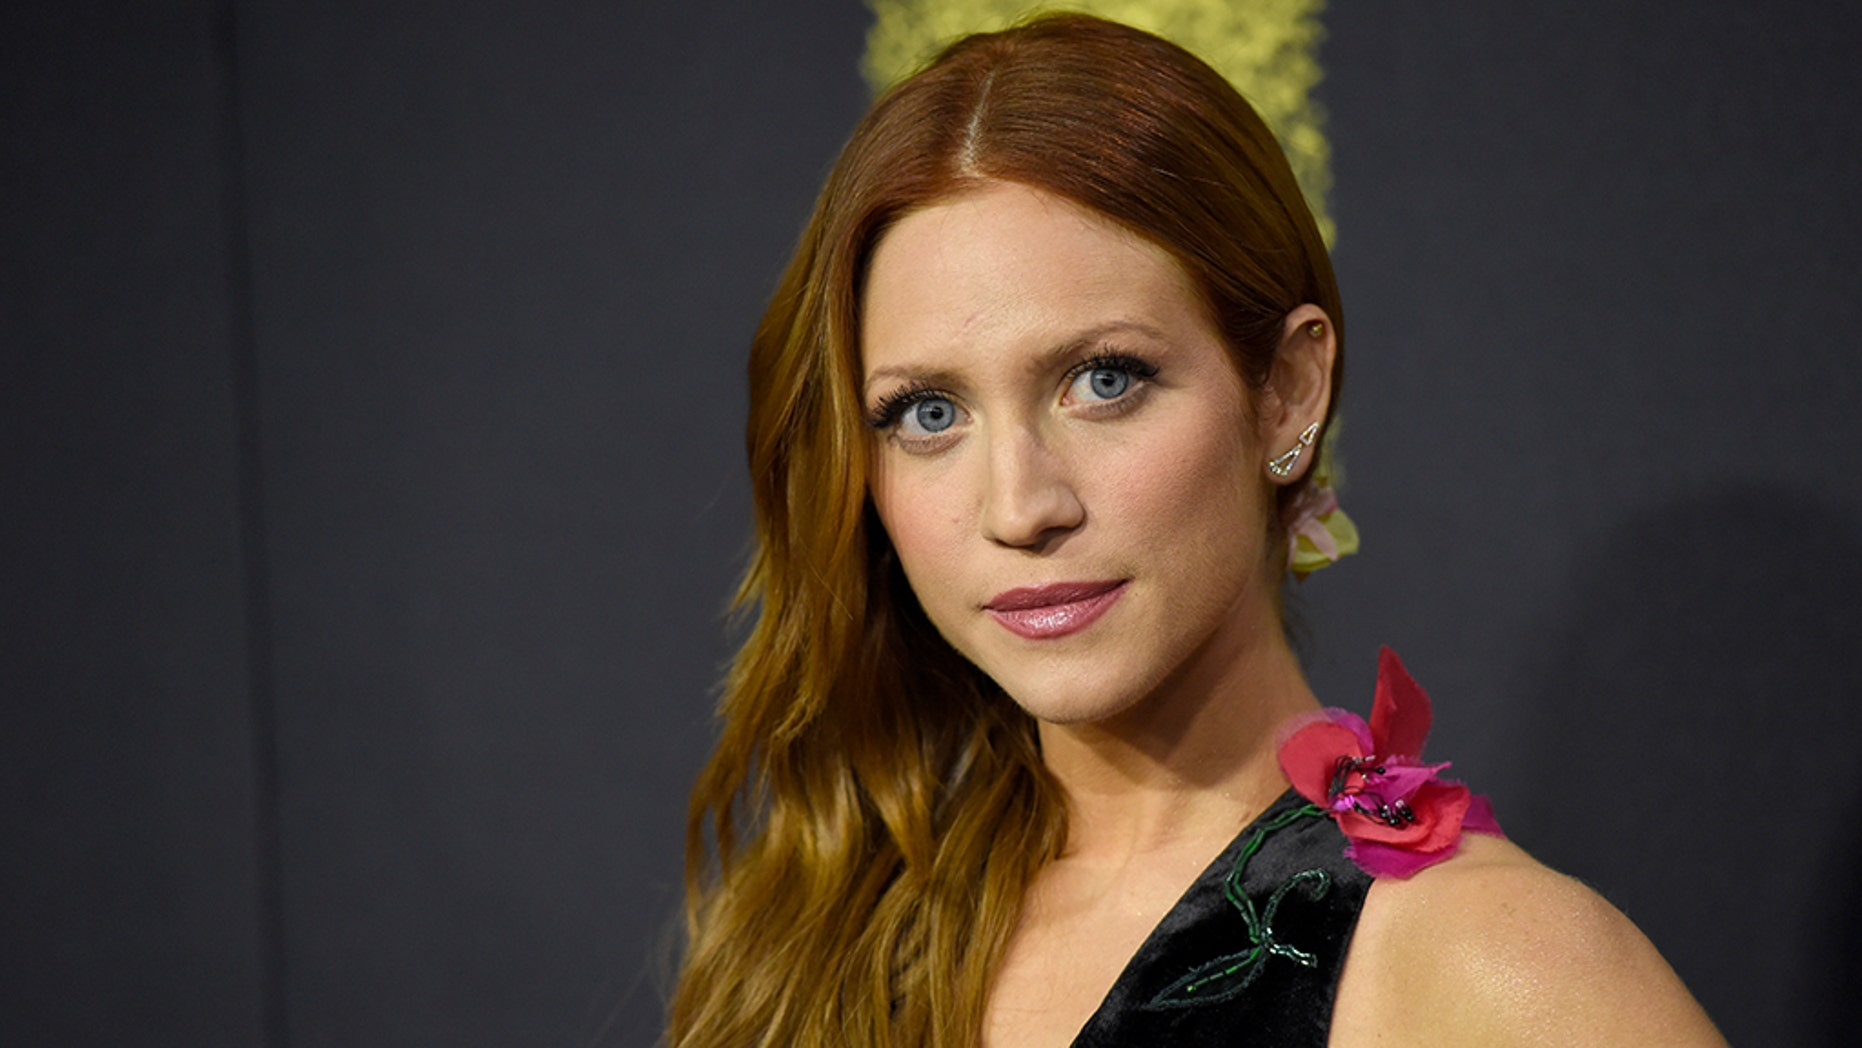 Fotos Brittany Snow nude (39 photo), Sexy, Sideboobs, Selfie, braless 2019